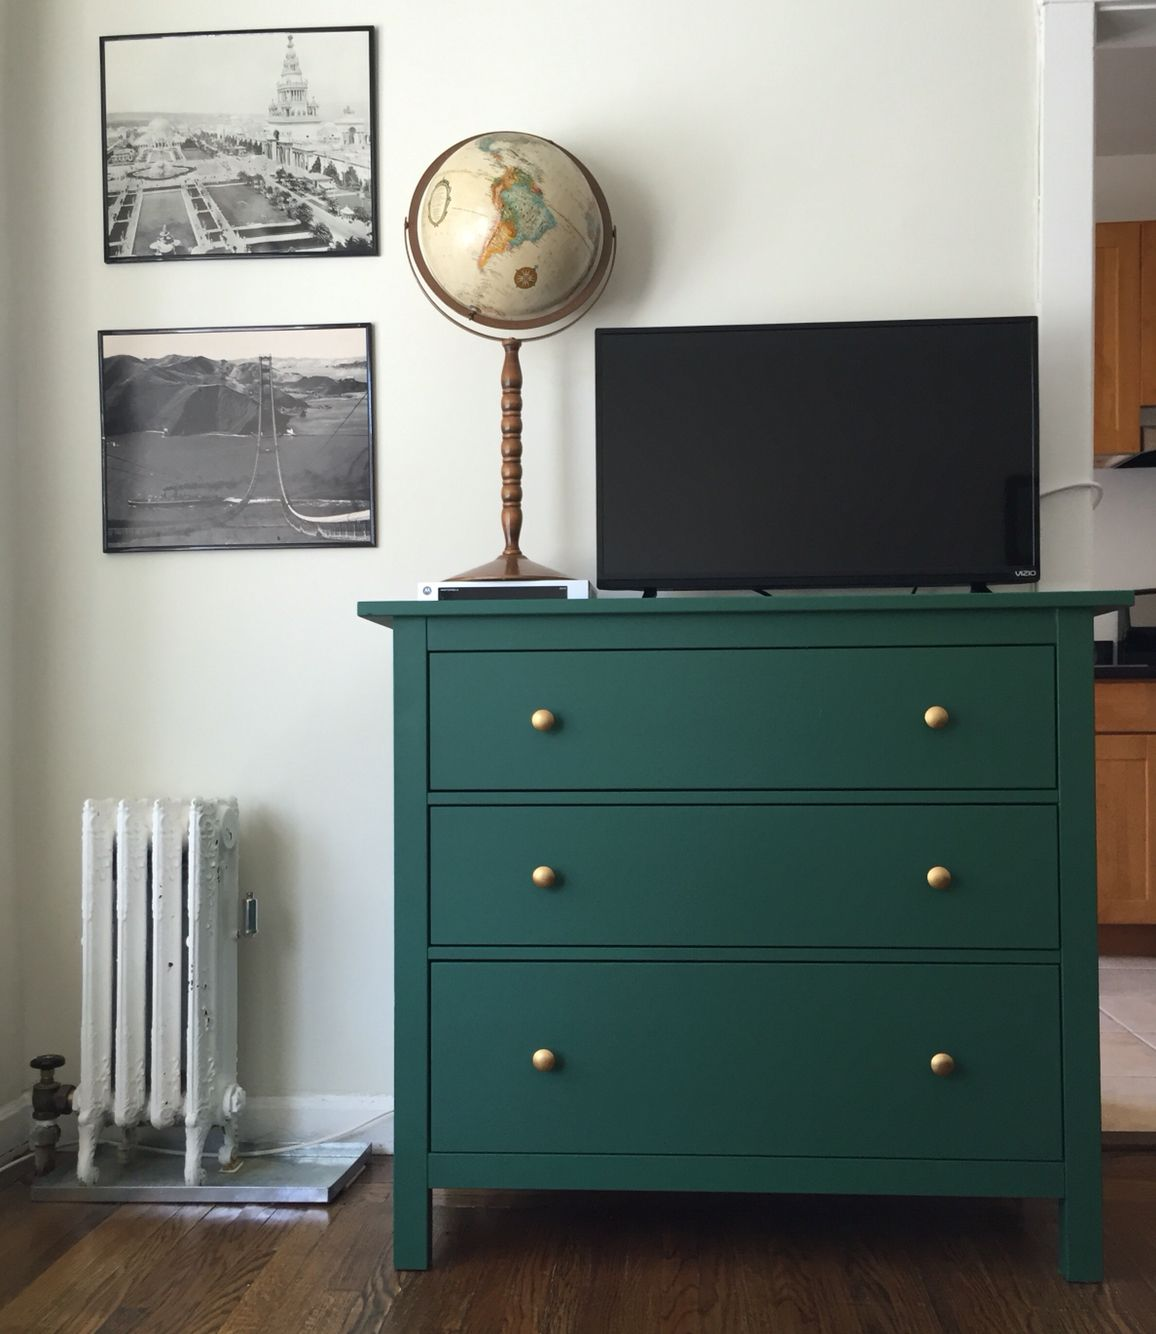 ikea hemnes dresser hack chalkboard green home pinterest meuble rangement deco. Black Bedroom Furniture Sets. Home Design Ideas